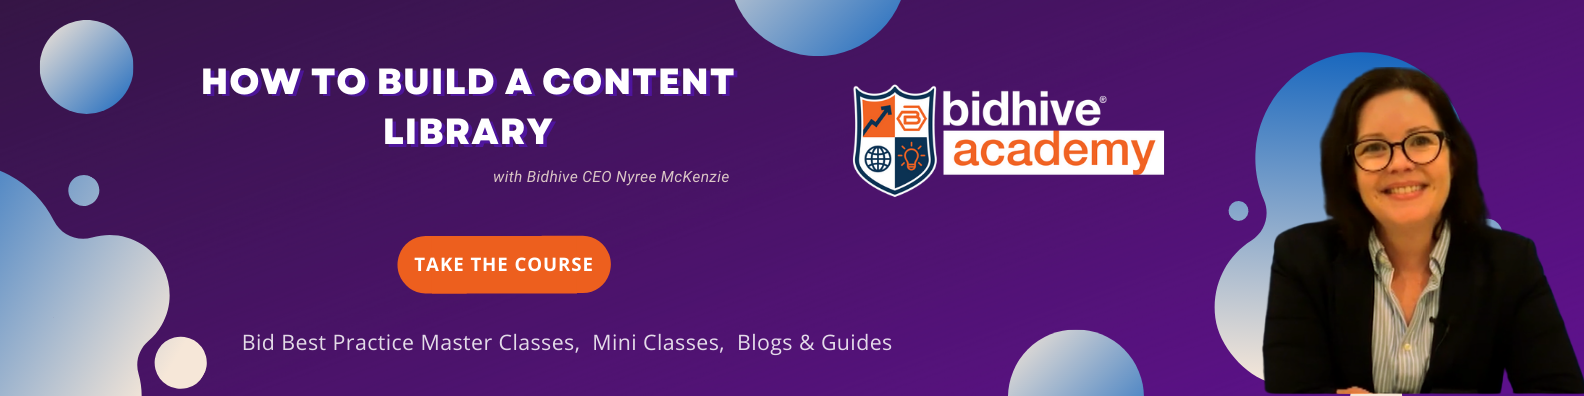 How to build a bid content library